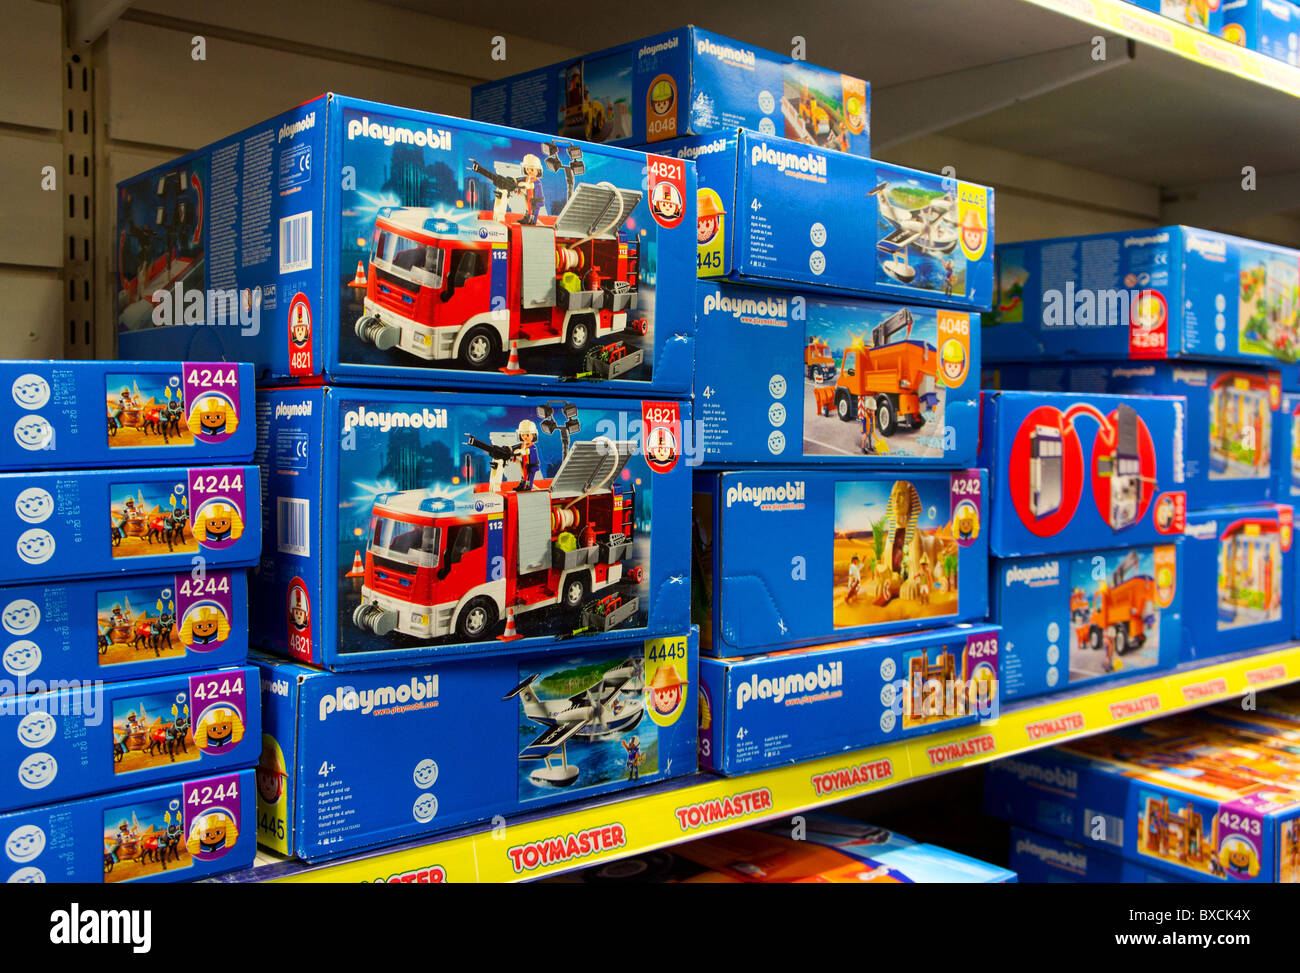 ' Playmobil ' in a toy shop - Stock Image